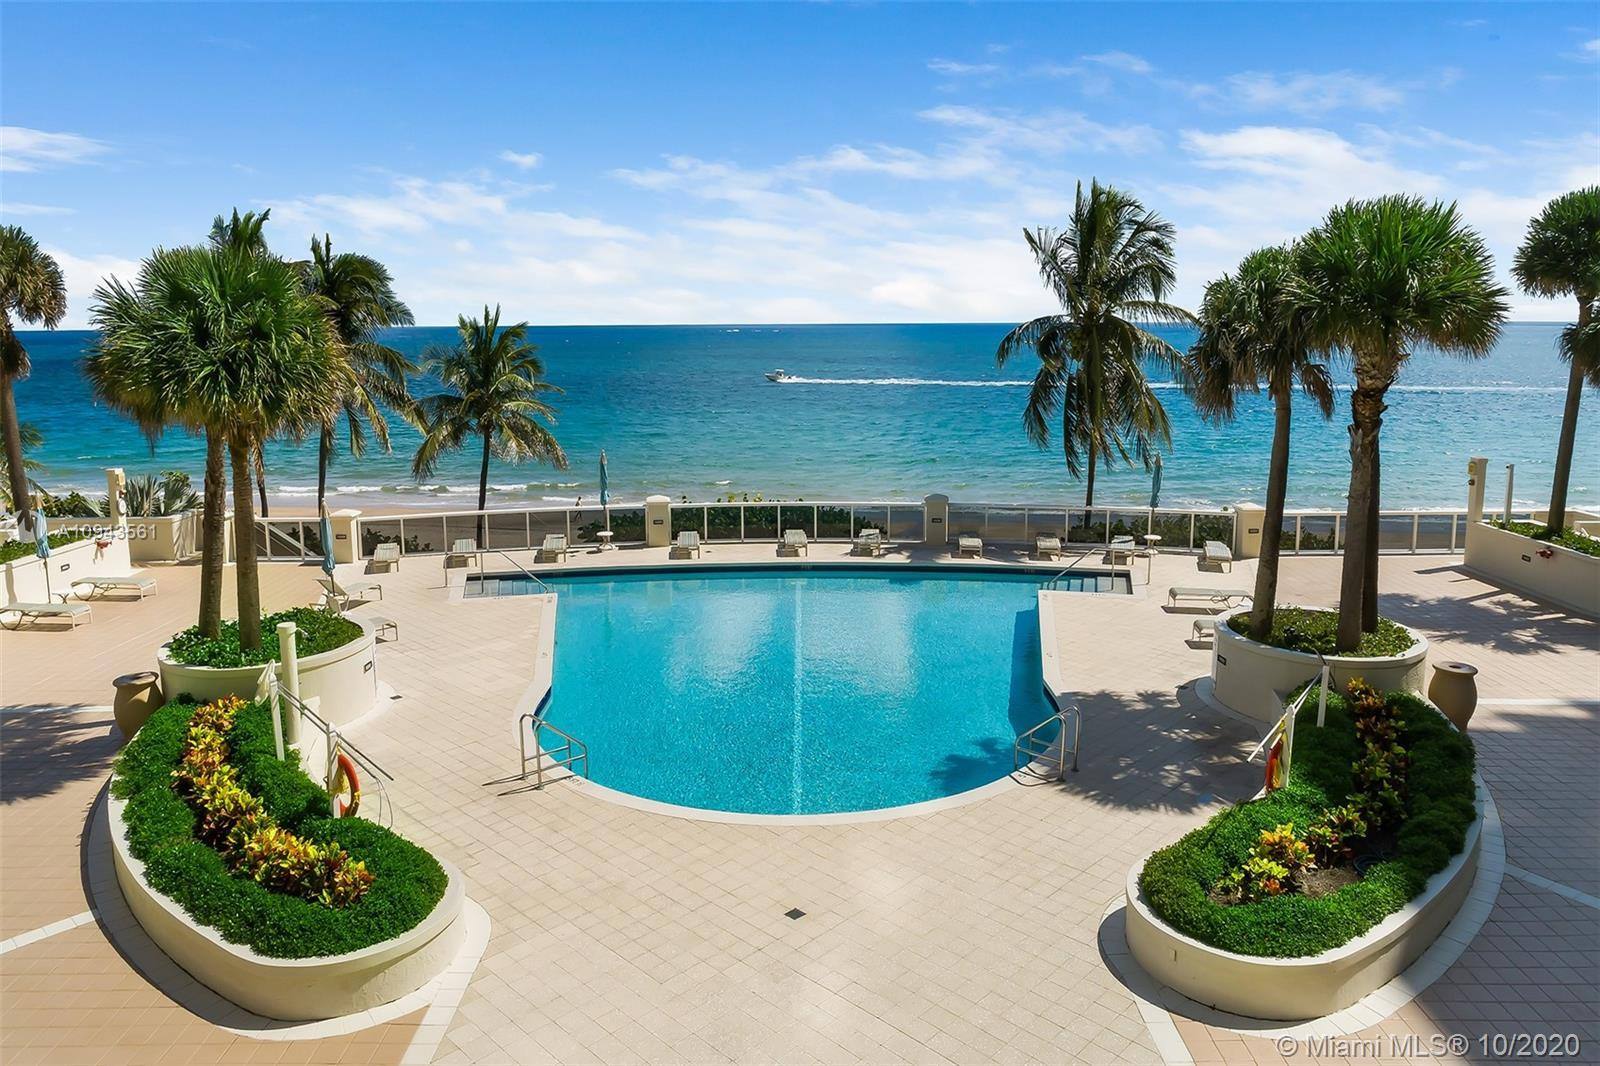 Stunning direct ocean views with resort-like amenities, L'Ambiance is one of the most popular buildi